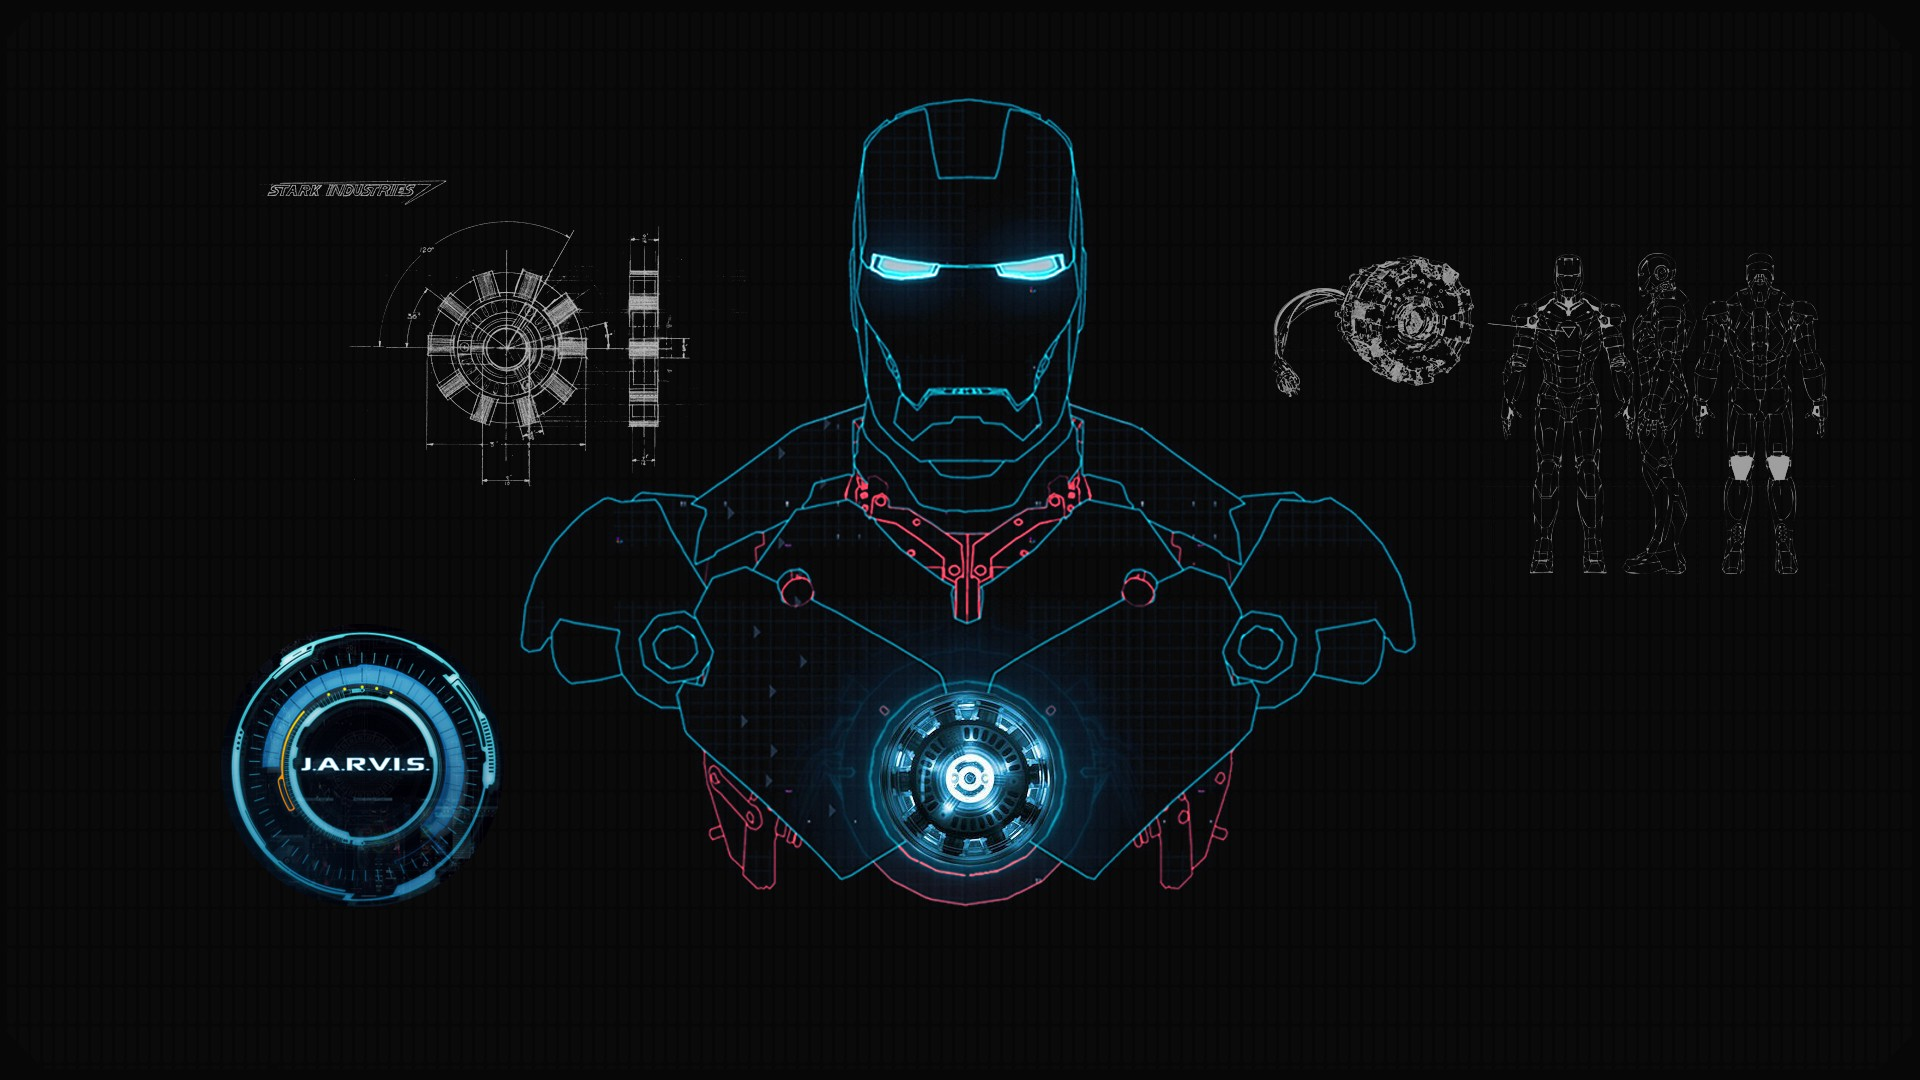 Iron Man's Jarvis — is it still a fiction? - Mirek Stanek